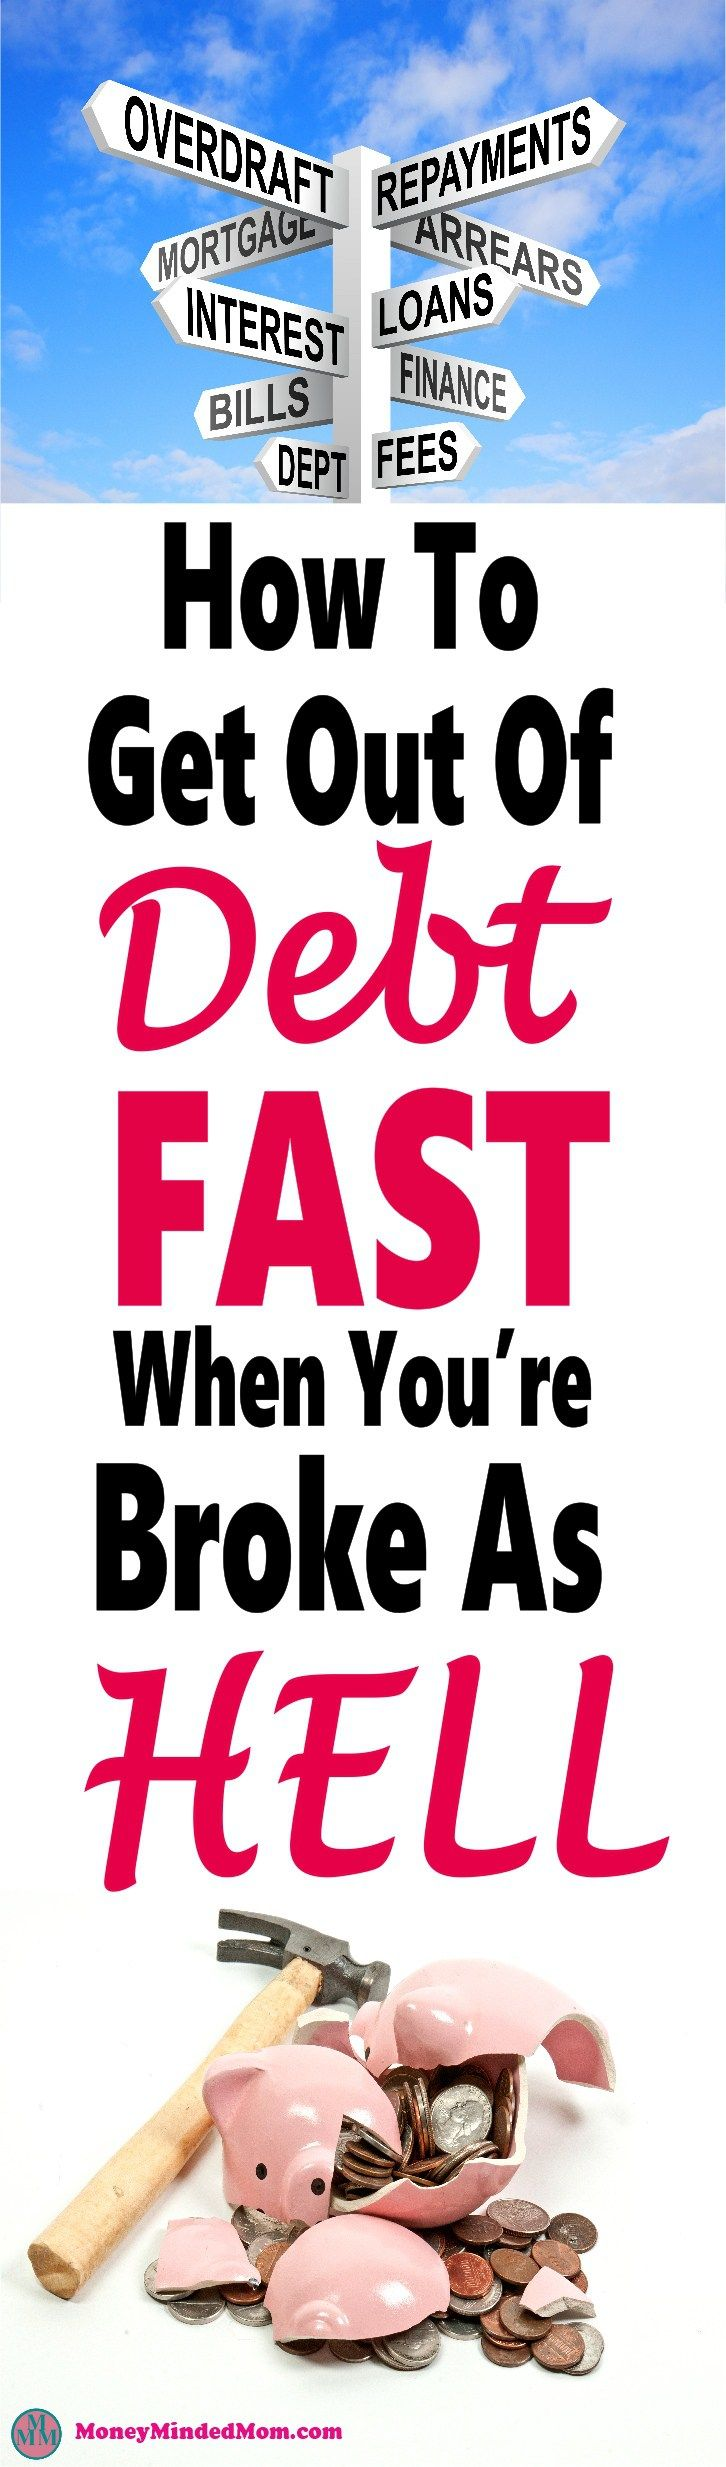 How To Get Yourself Out Of Debt Fast When You're Broke as Hell~ Paying off debt is really difficult, especially when living from paycheck to paycheck. But it can be done, click over to read how. debt | debt payoff | money | paying off debt | debt free #debt #money #finance #debtfree